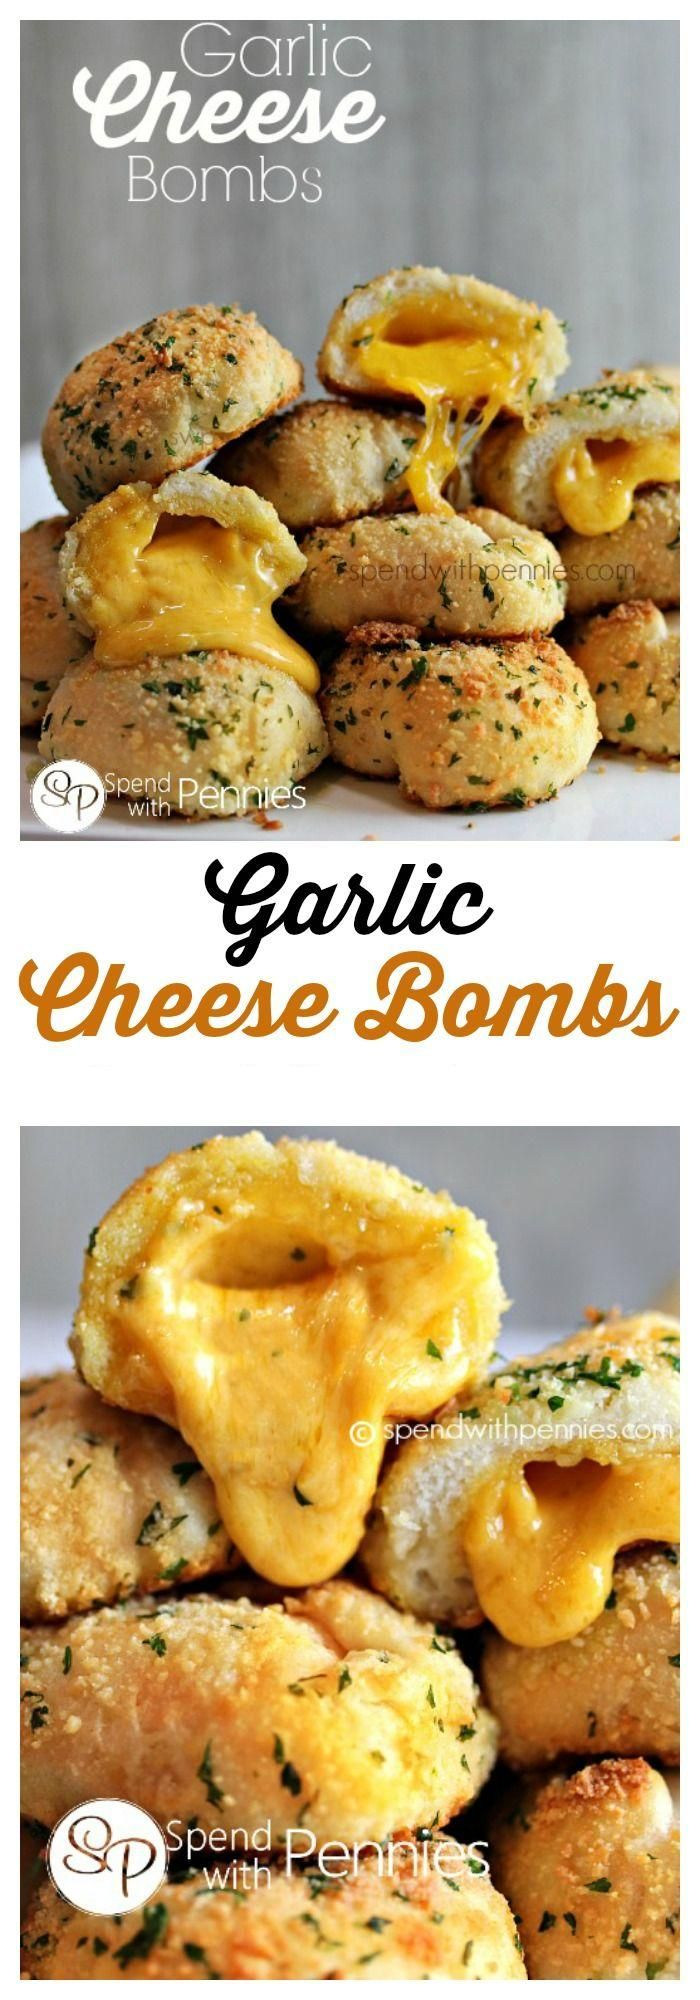 These Garlic Cheese Bombs are not only delicious, they are easy to make! Perfect as a snack, appetizer or side!